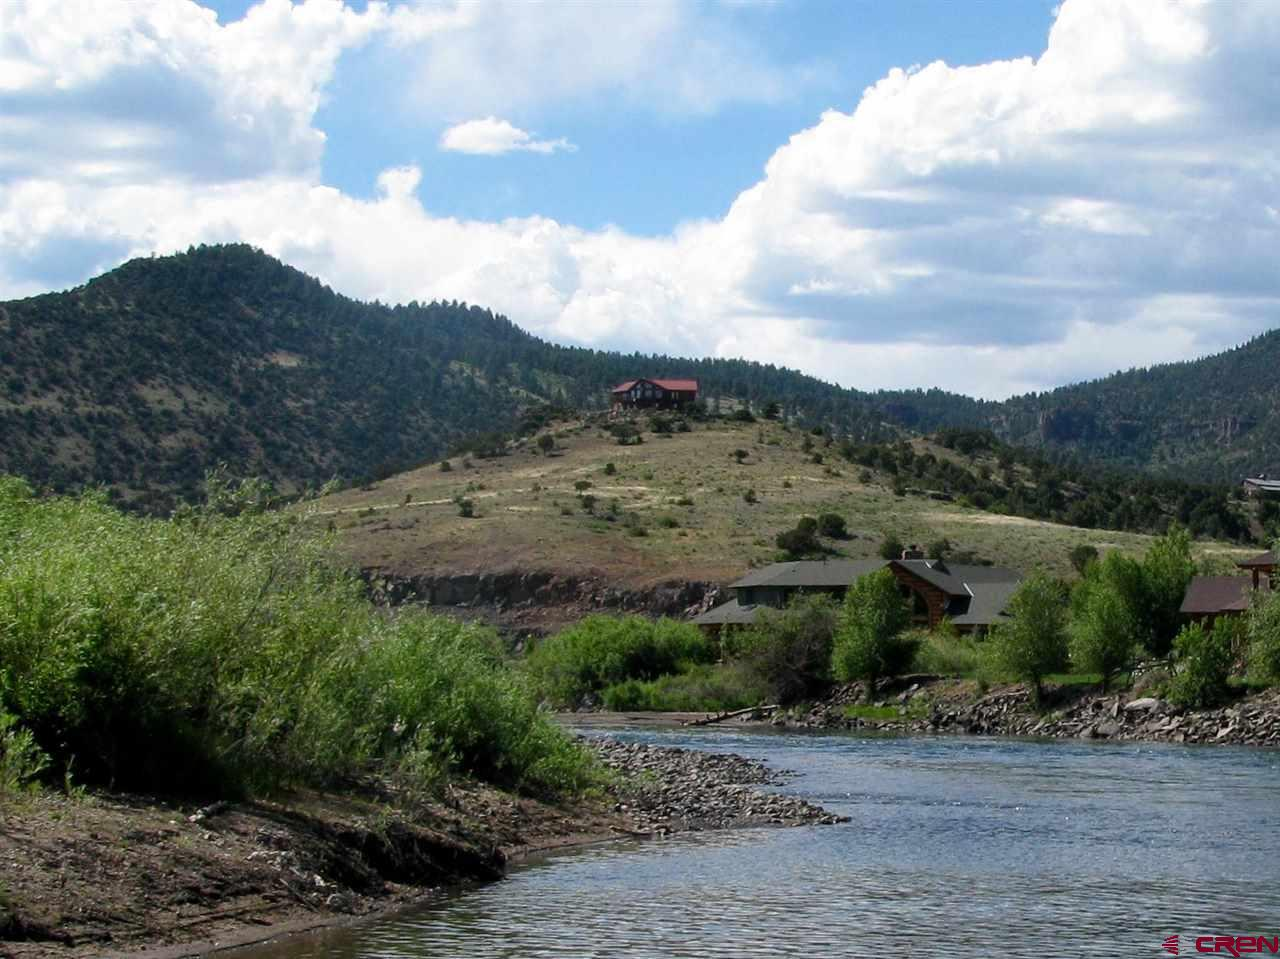 MLS# 767631 - 9 - 852 Soaring Eagle Lane, South Fork, CO 81154